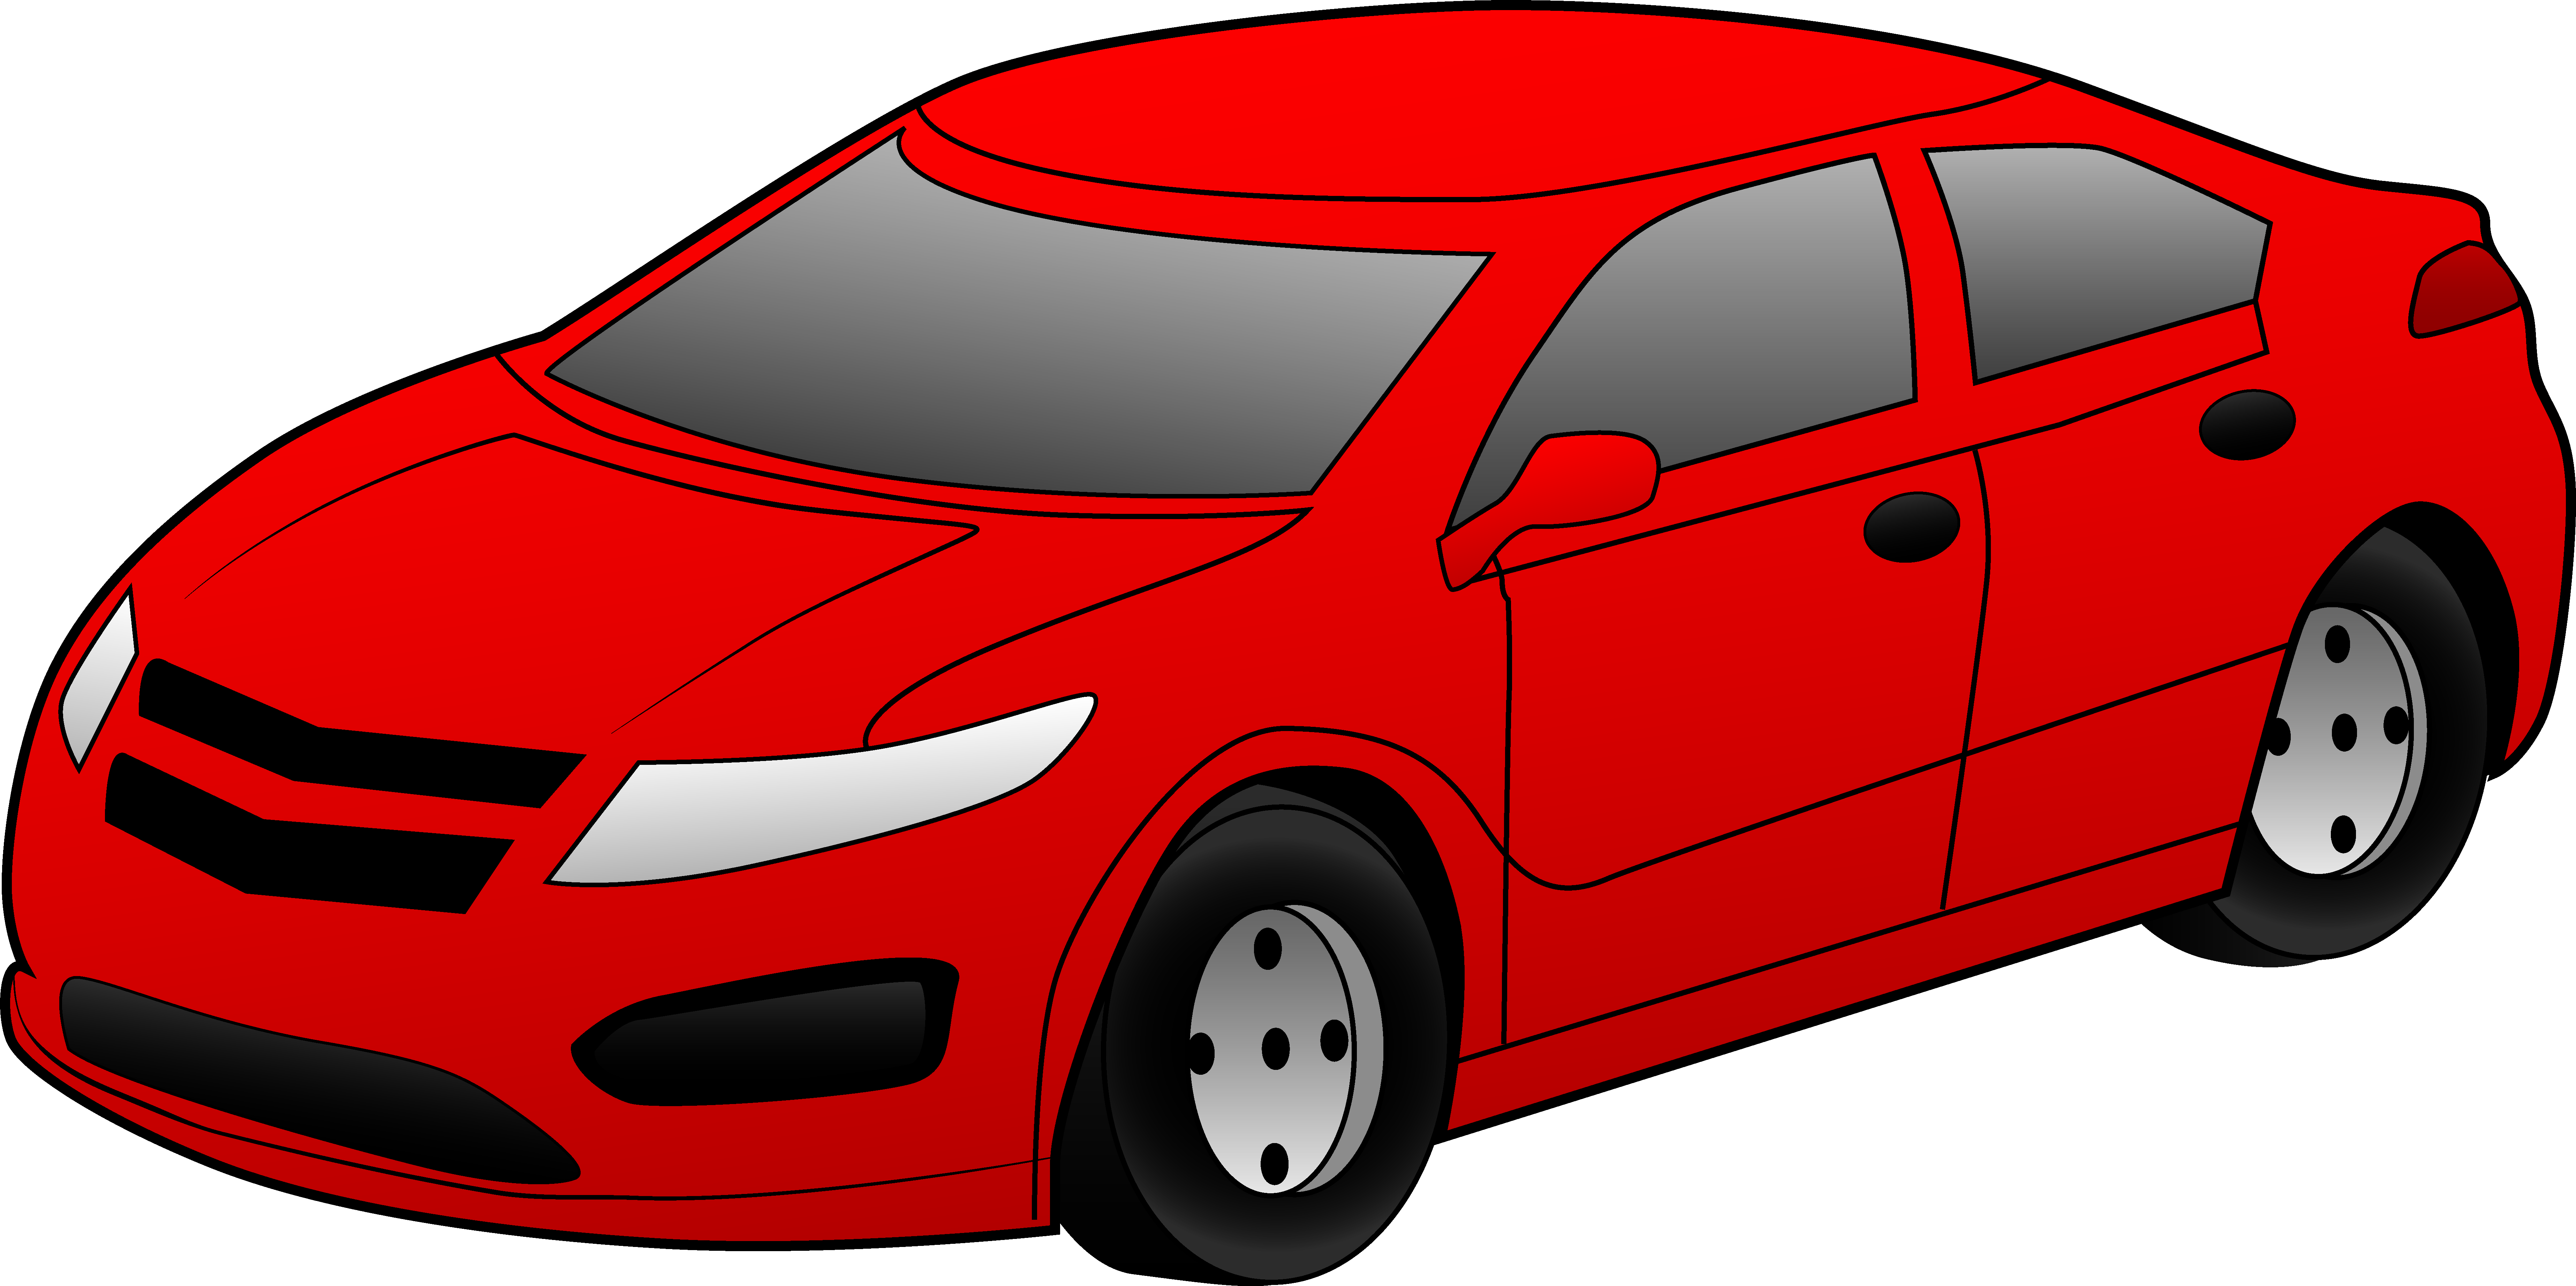 Cool Red Sports Car Free